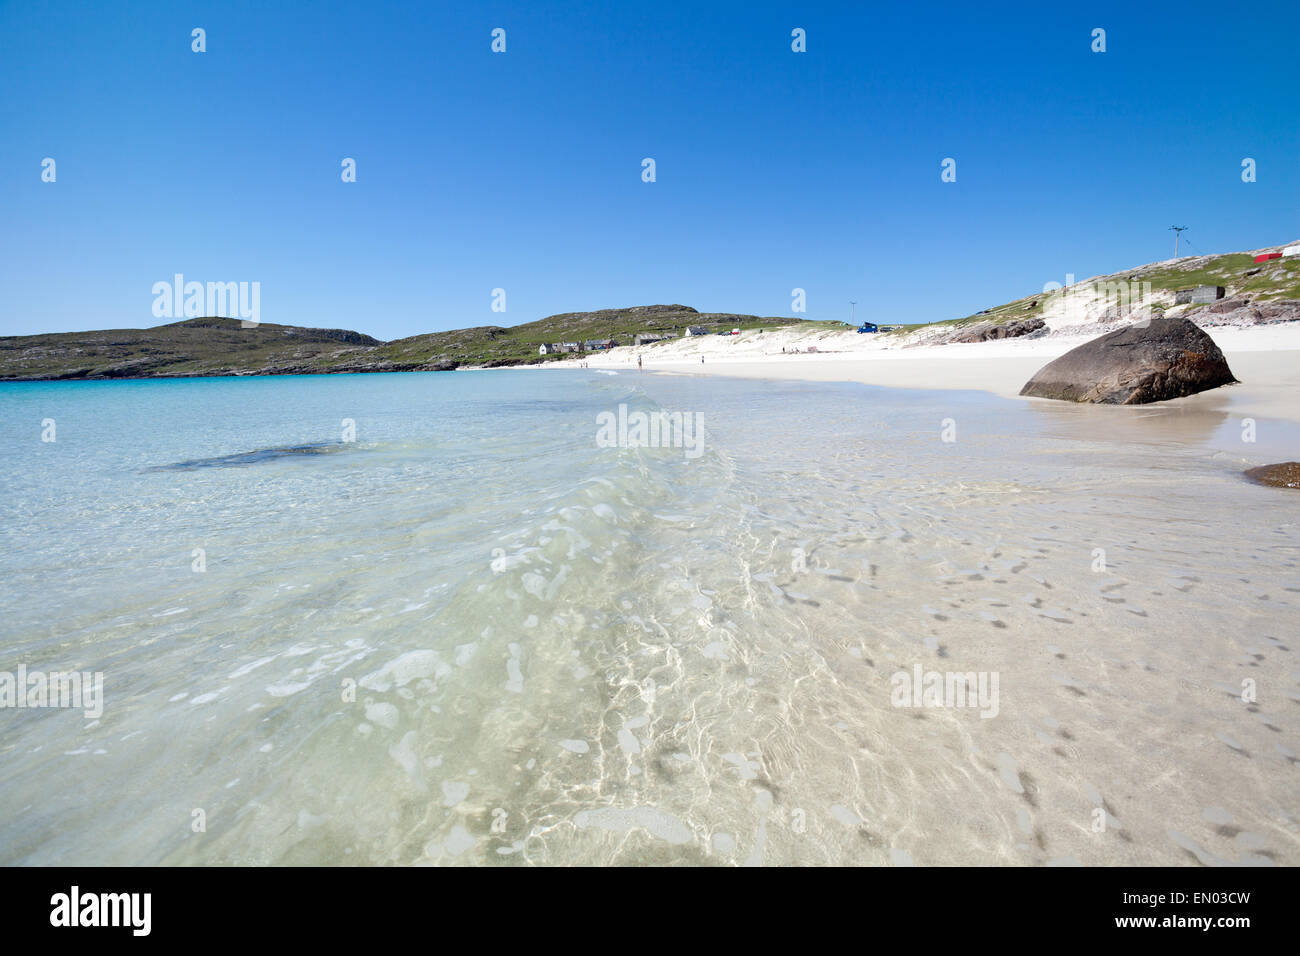 Isle of Harris, white sandy beach and crystal clear water - Stock Image